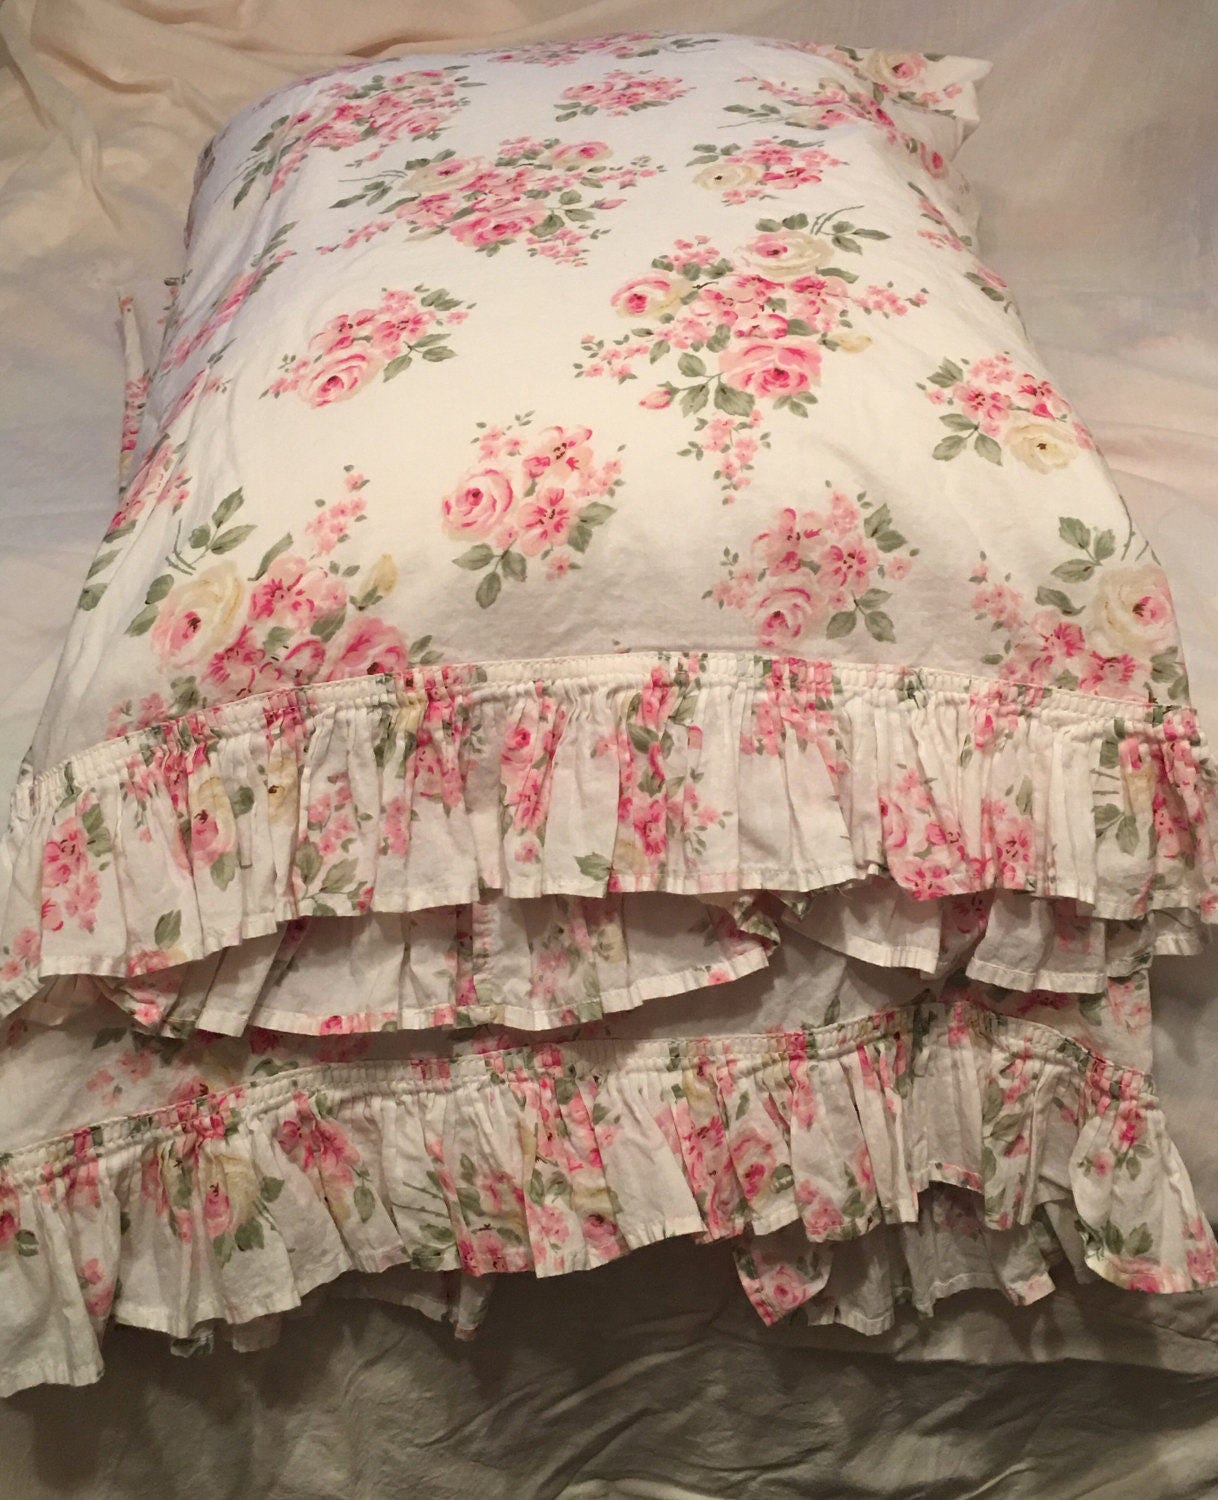 Charming Shabby Chic cotton pillowcases/ Shsbby Chic